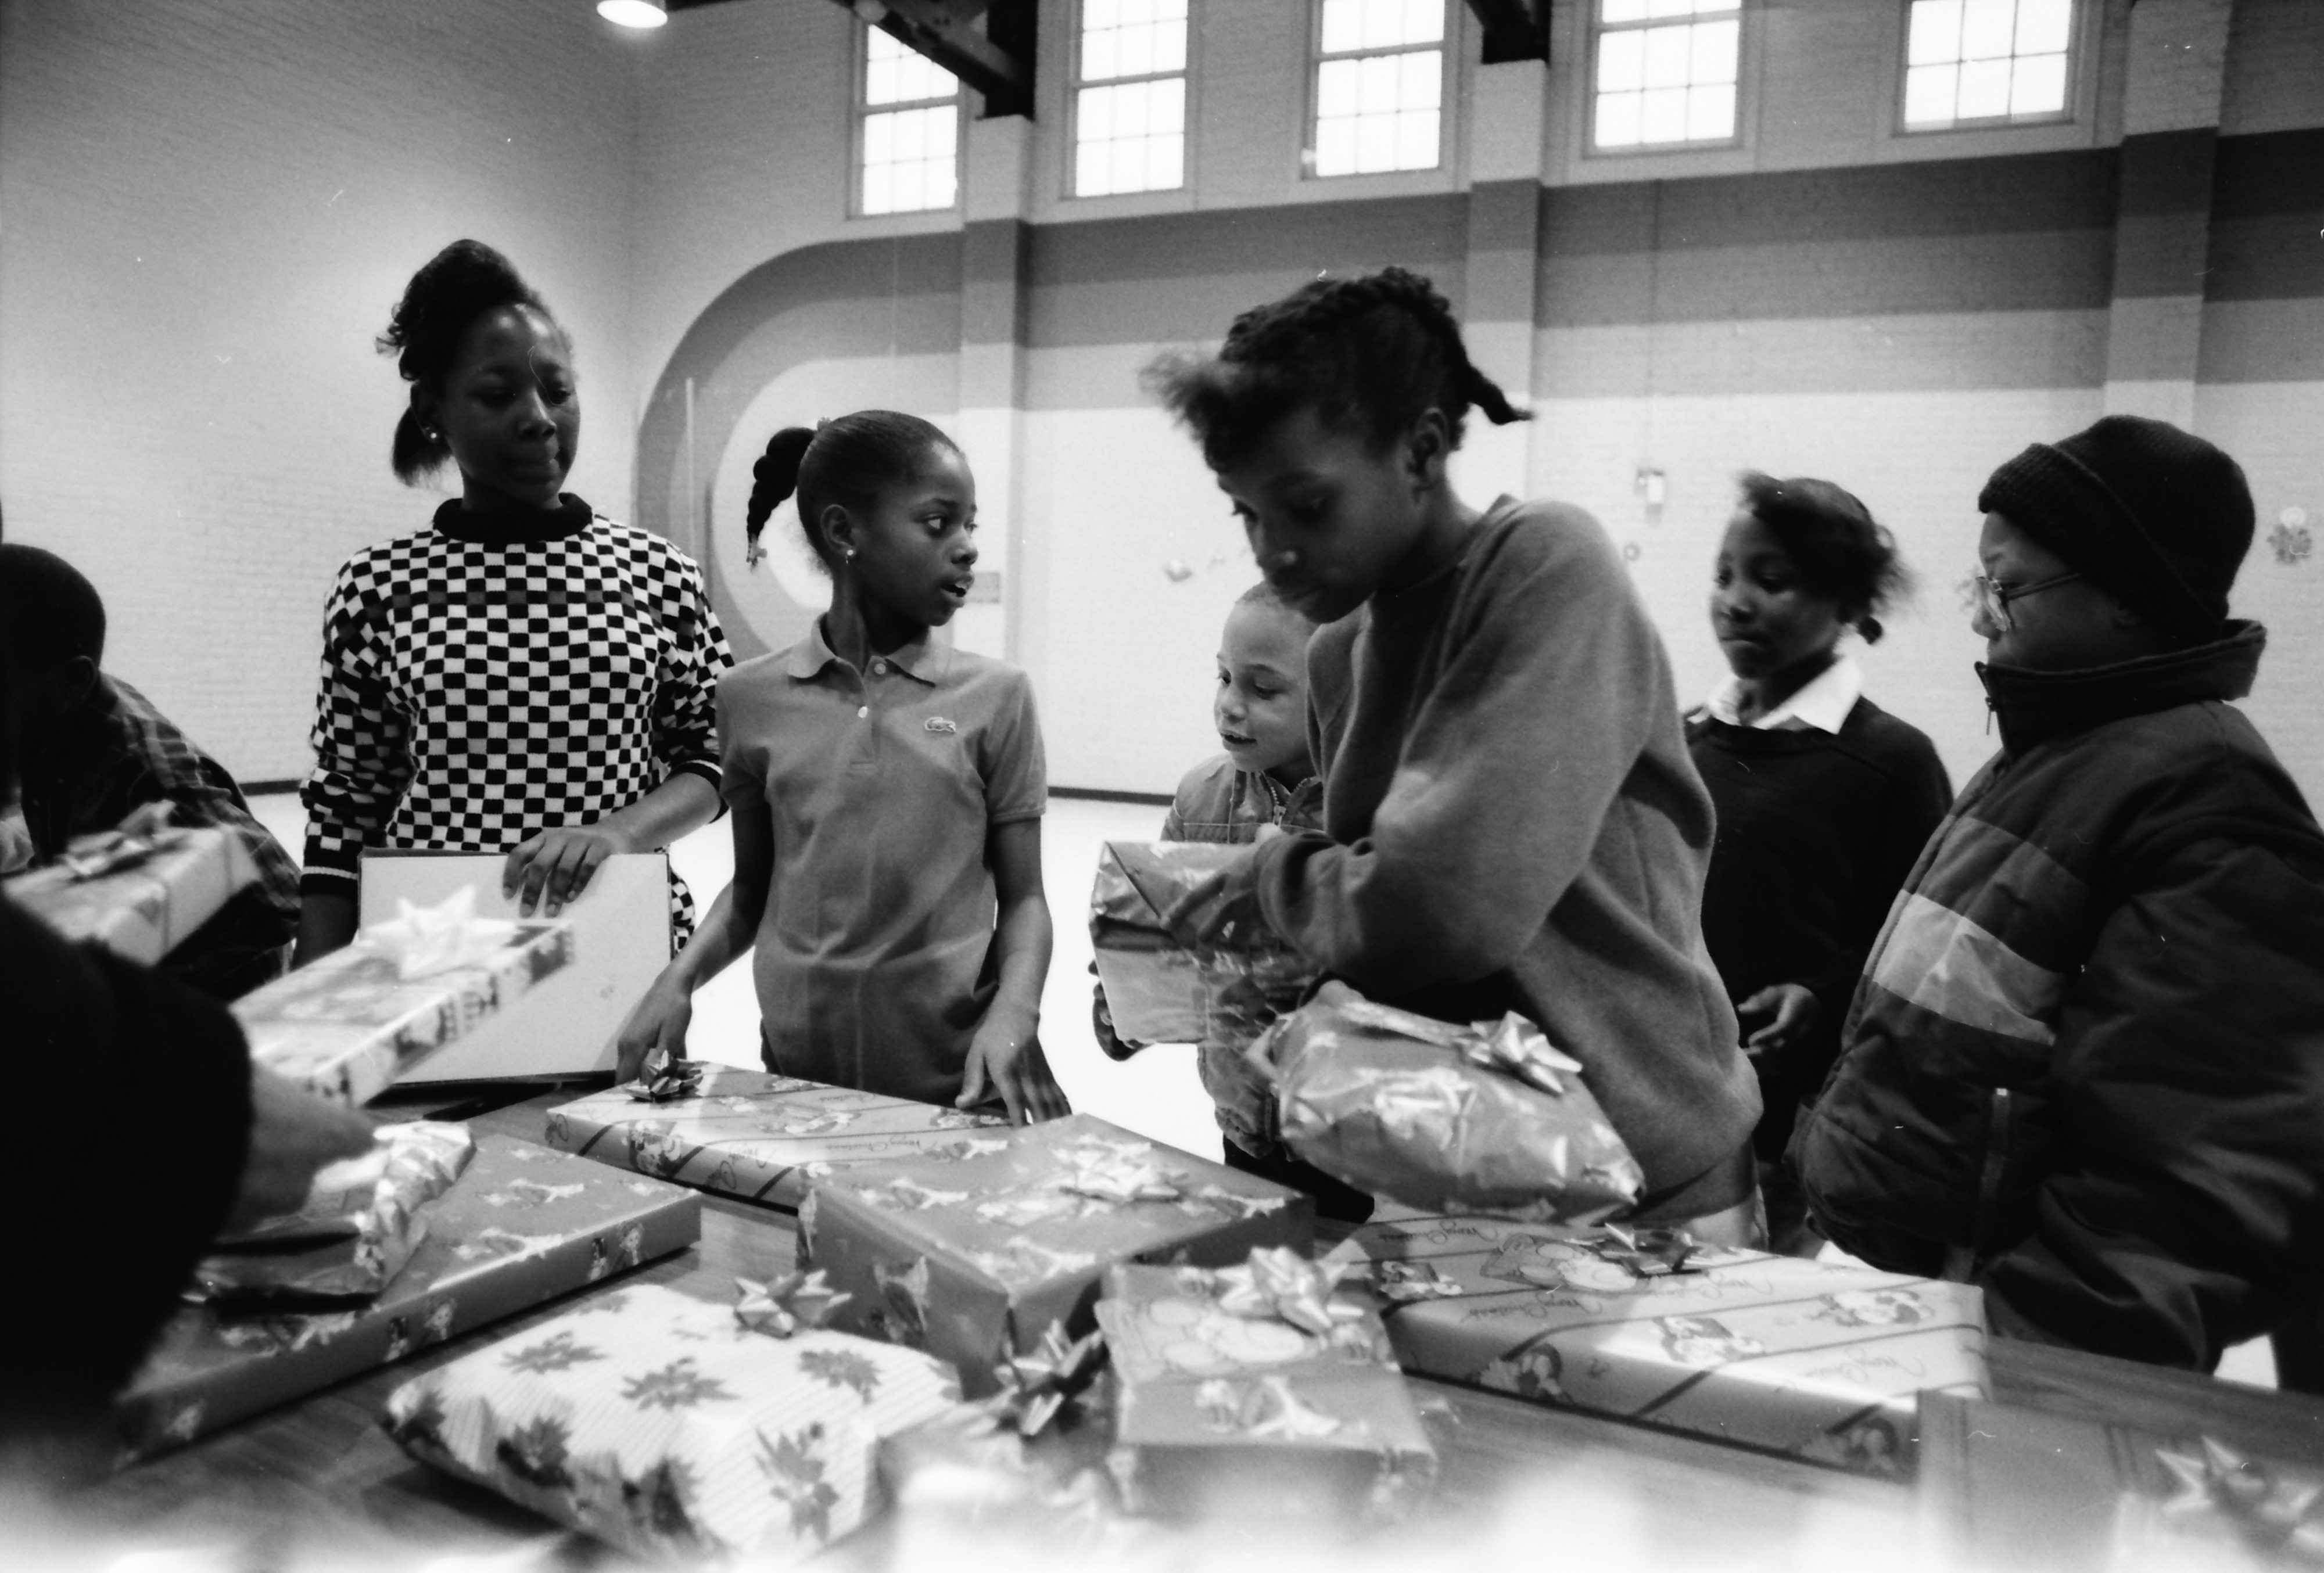 Christmas Gift Exchange at Parkridge Community Center, December 1988 image